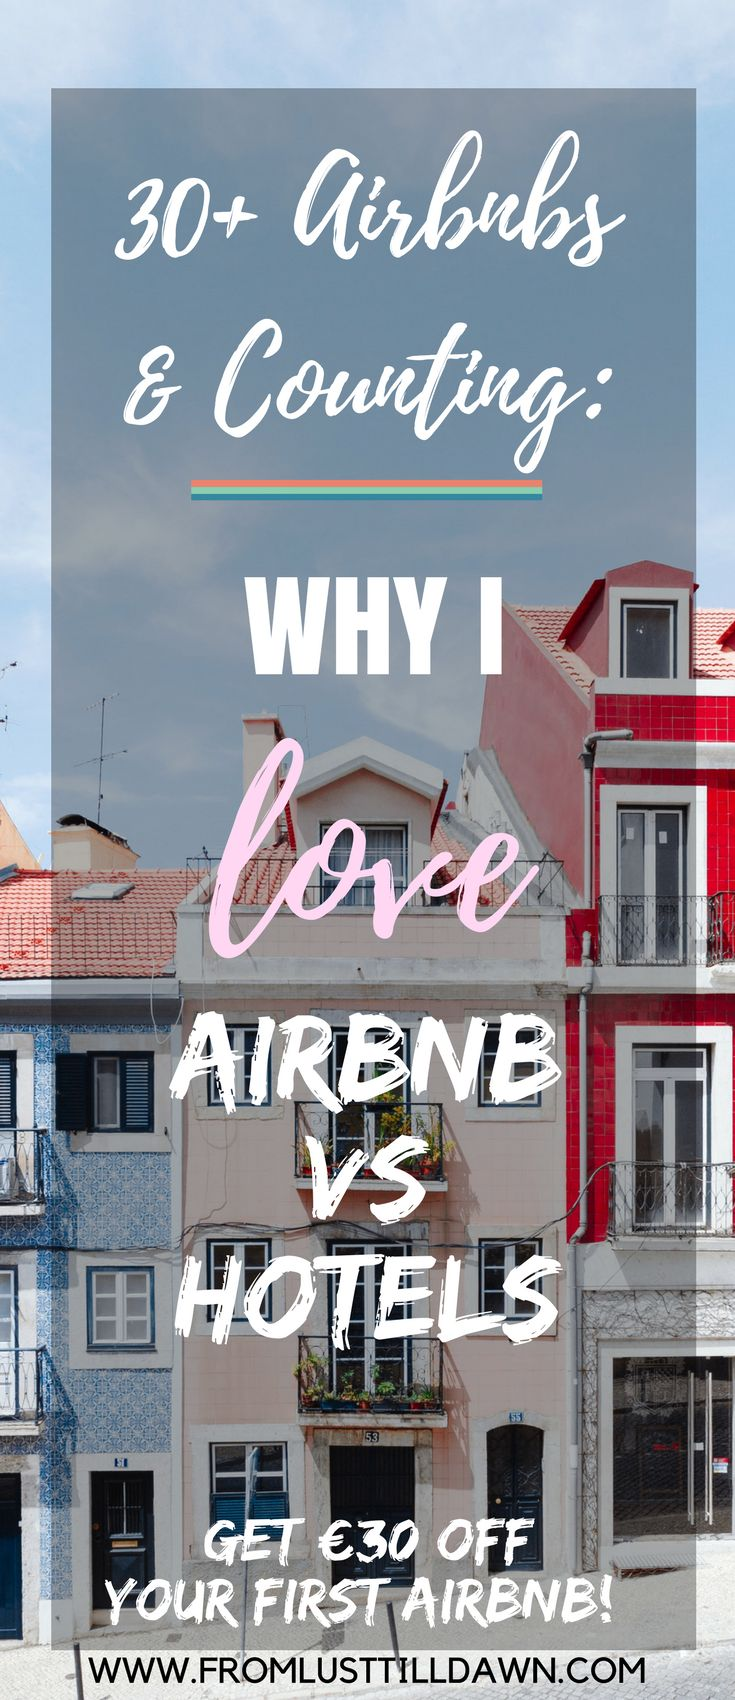 I've stayed at over 30 Airbnbs since 2011. What is Airbnb? I'll tell you what Airbnb is, why you'll like staying at an Airbnb over a hotel, how to choose a good Airbnb, and when you should NOT choose an Airbnb vs. a hotel. Click through for my best insight.   PIN FOR LATER   #airbnb #hotel #travel #accommodation